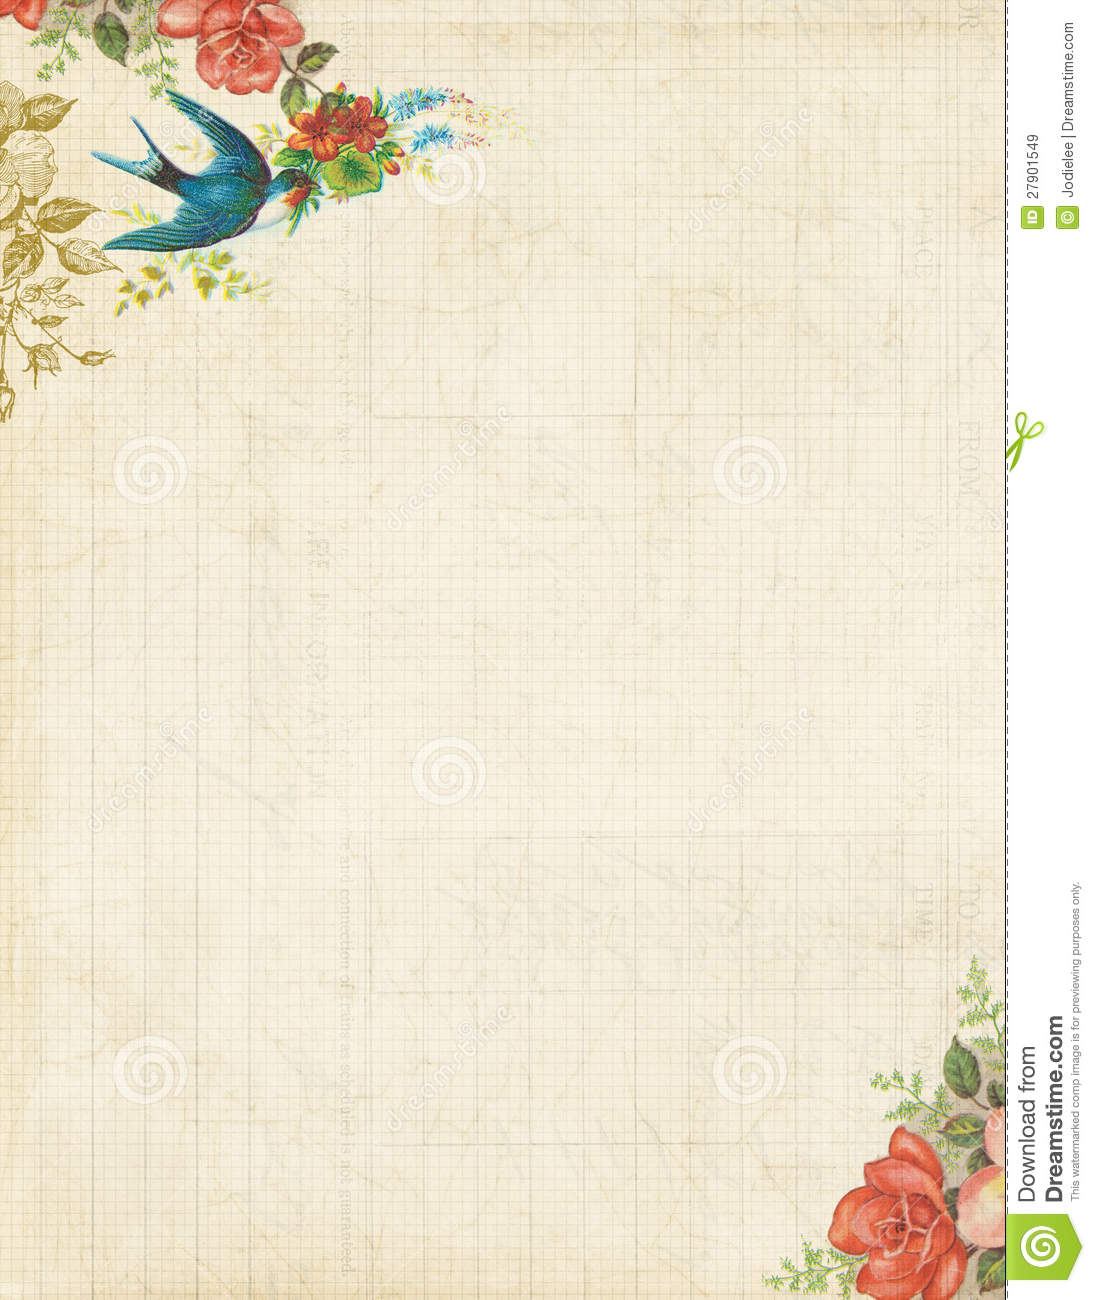 6 Best Images of Vintage Printable Stationary Paper - Free ...